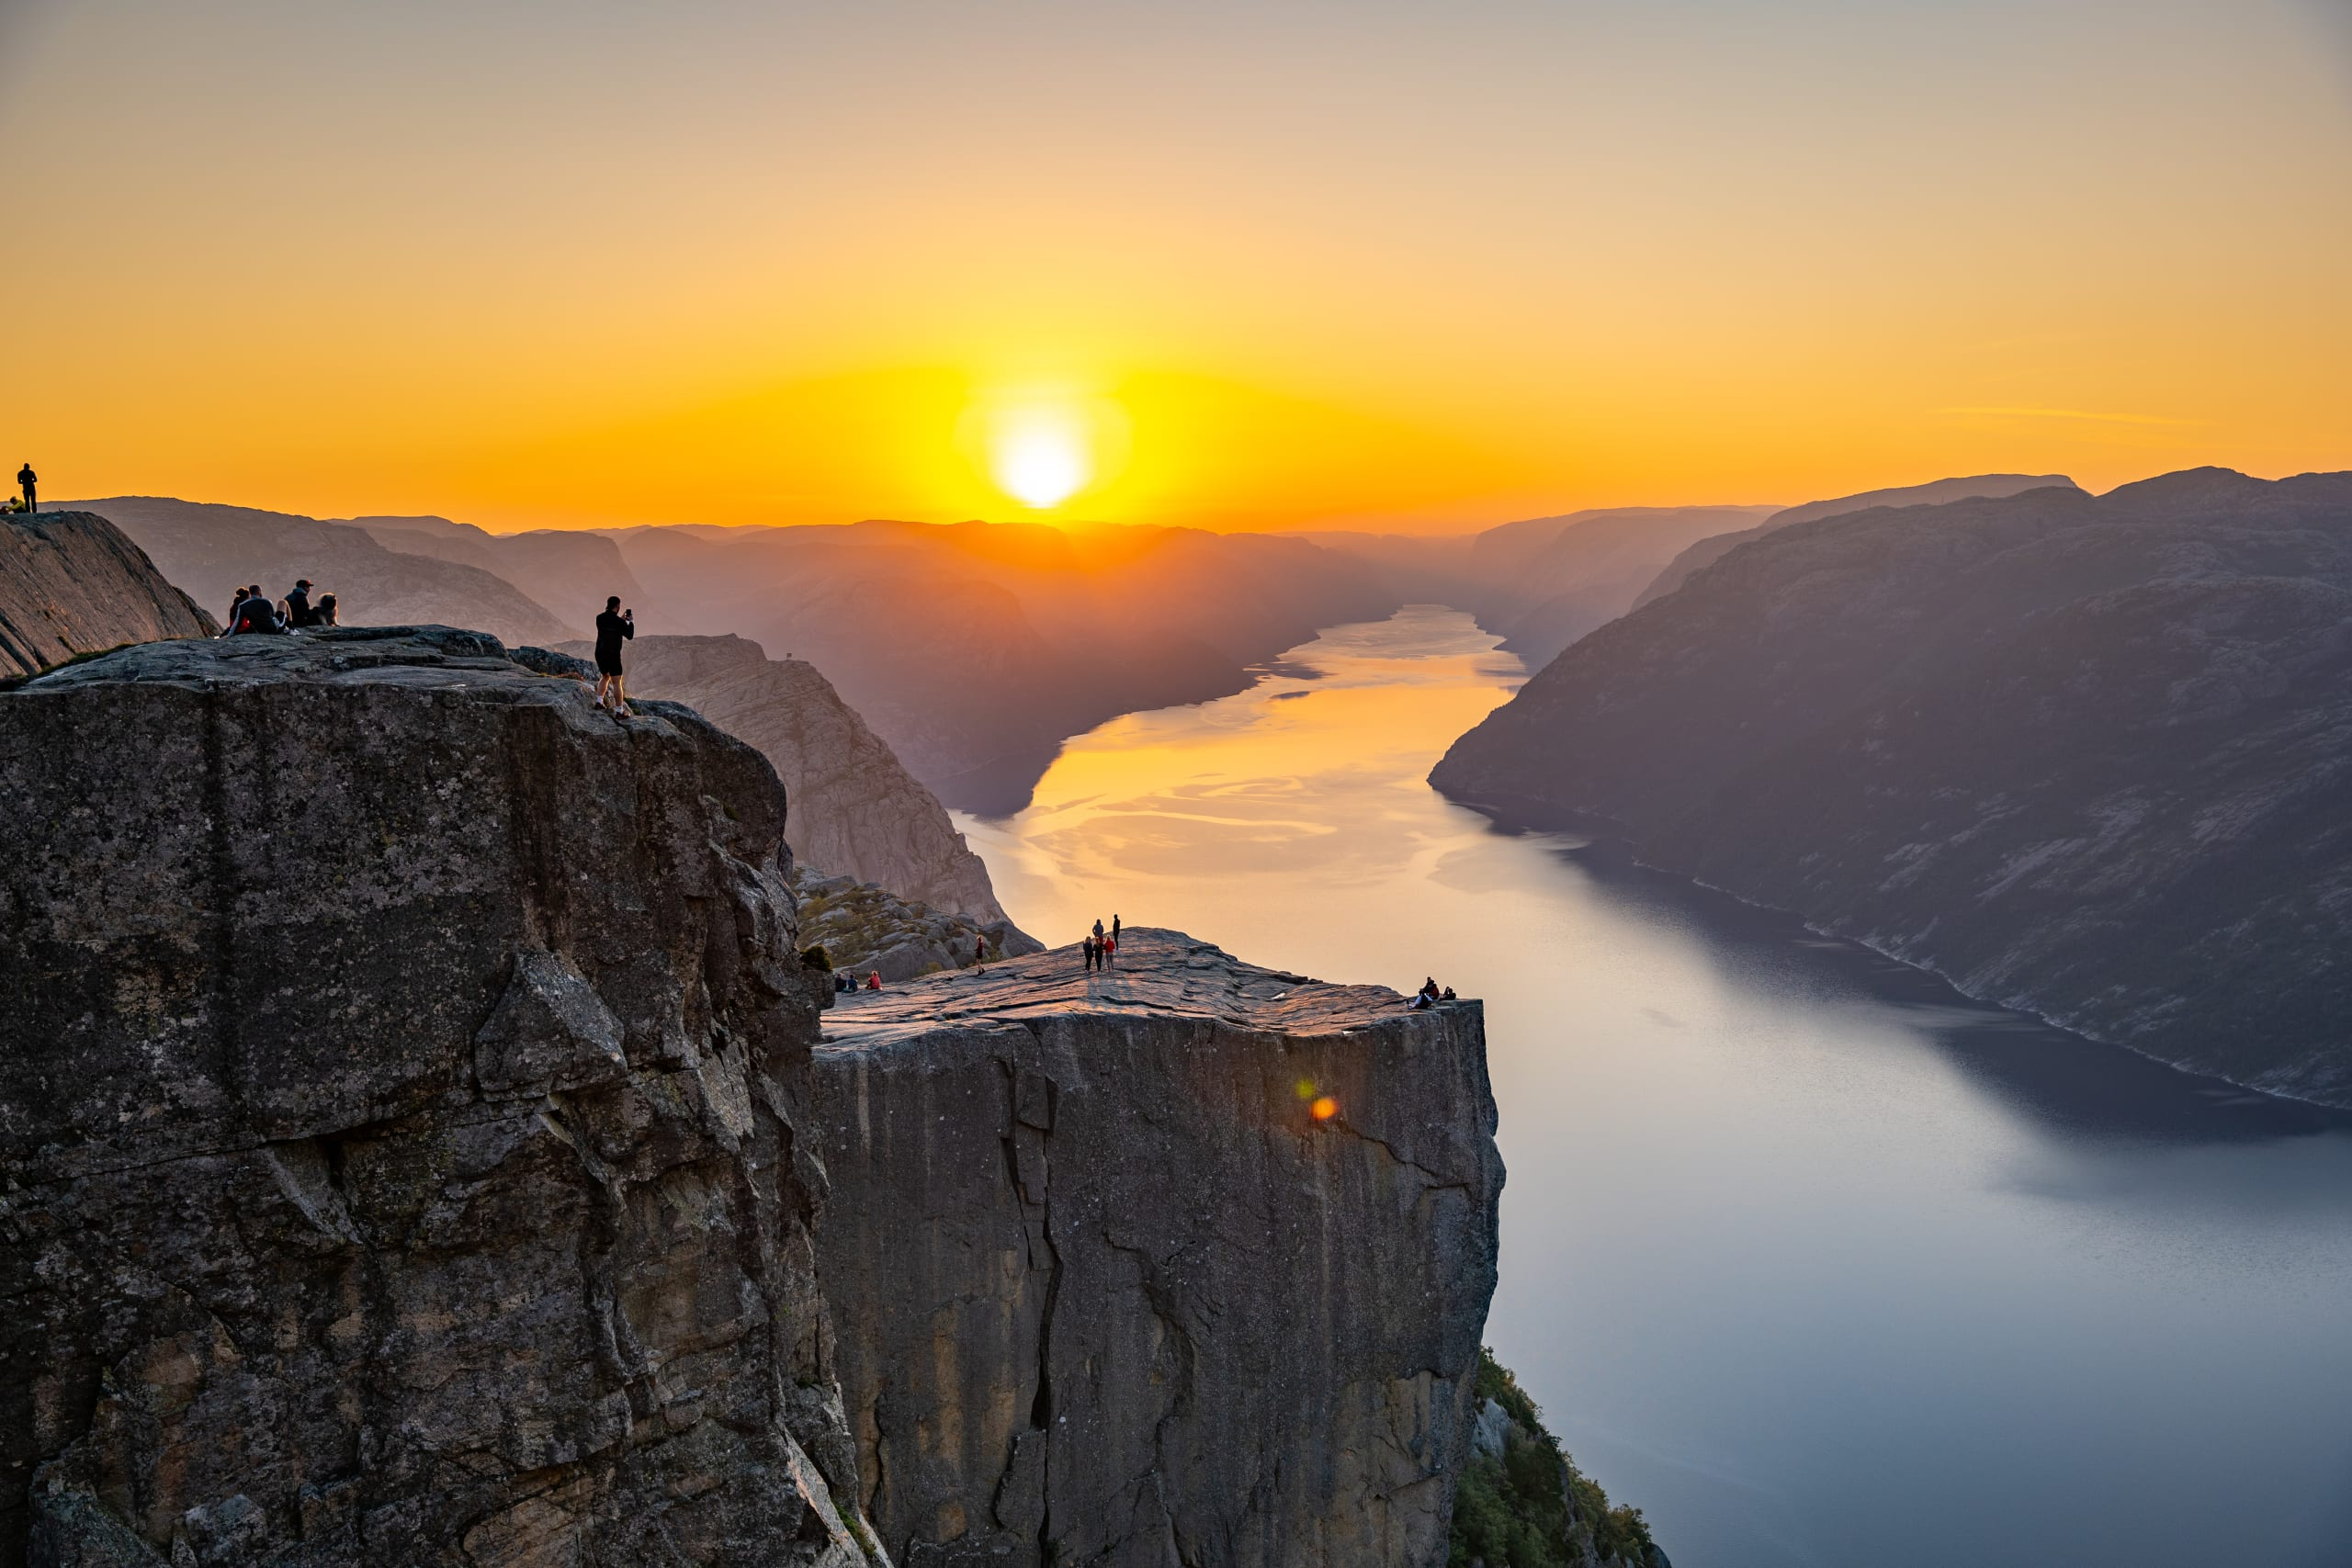 Sunrise at Preikestolen